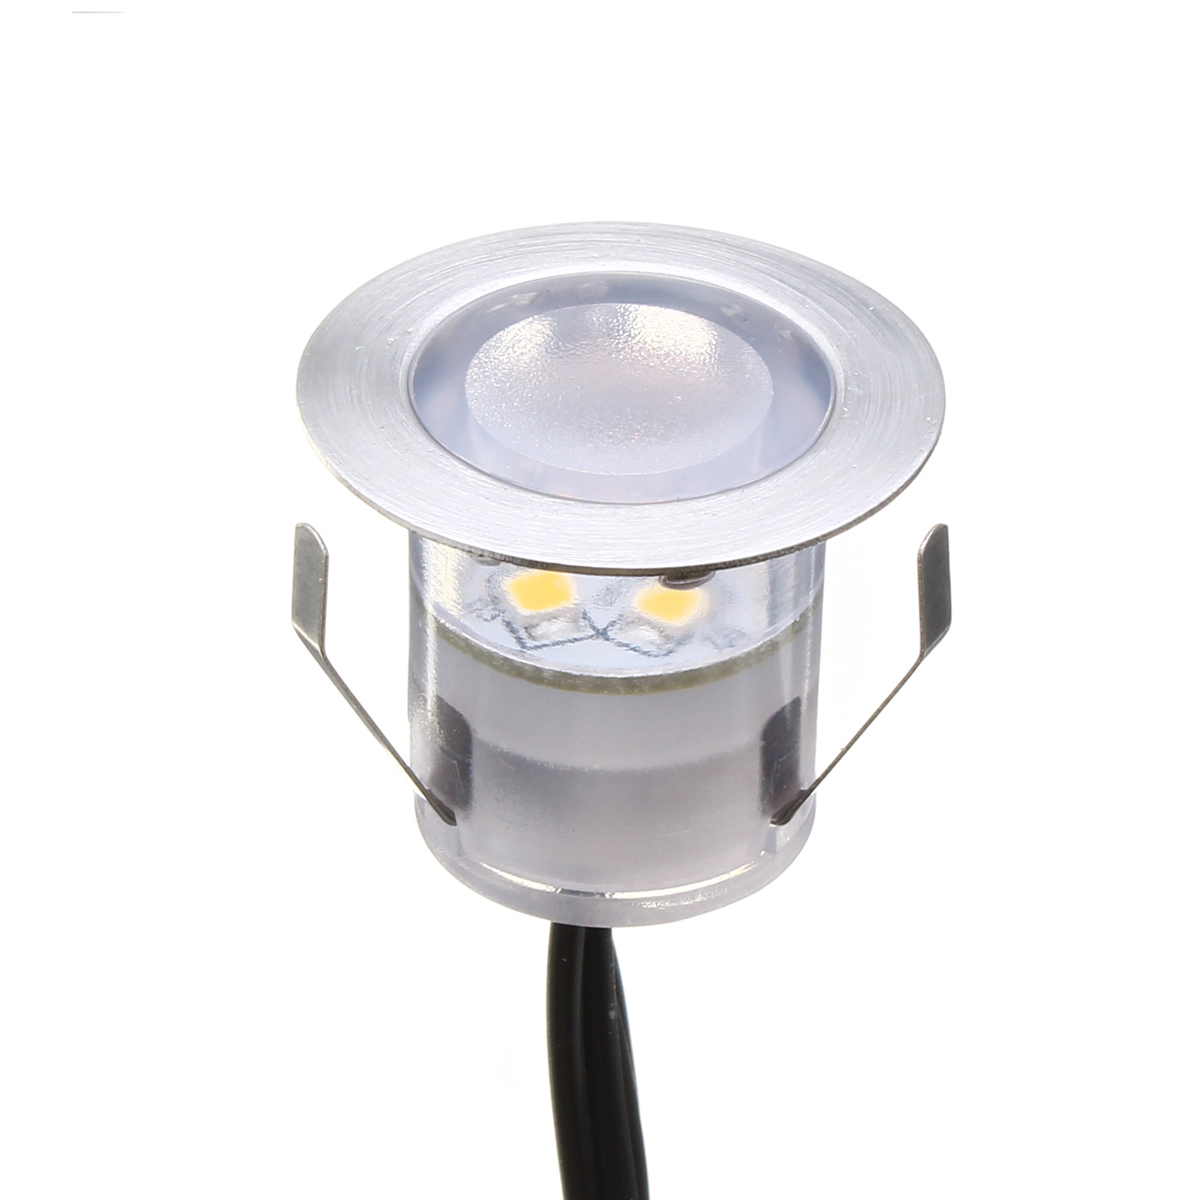 Mini Spot Light RGB Led Recessed Downlight Inground Floor Stair Step Light Spotlight Bathroom Kitchen Staircase Lighting Fixture